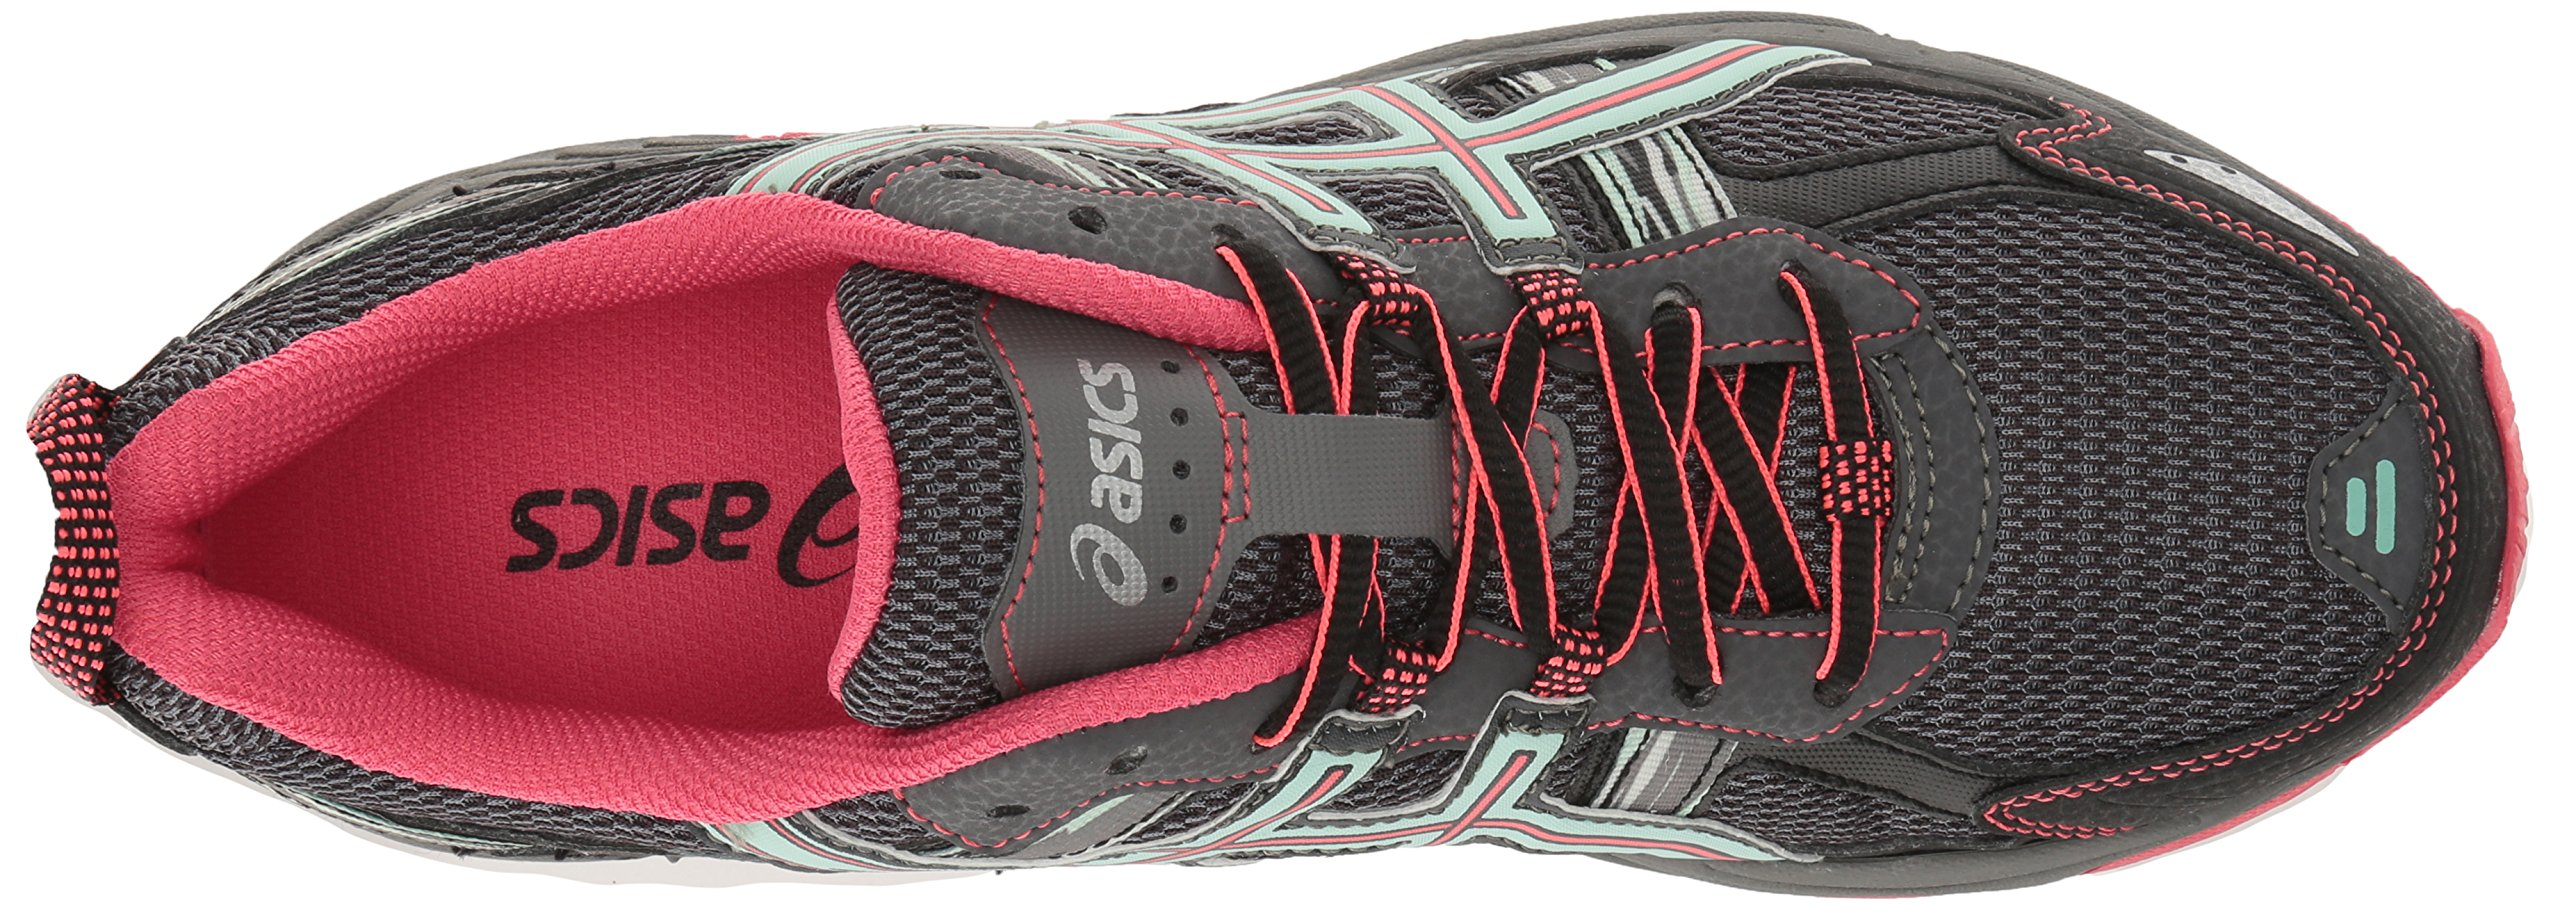 ASICS Women's Gel-Venture 5 Trail Runner, Carbon/Diva Pink/Bay, 9 M US by ASICS (Image #8)